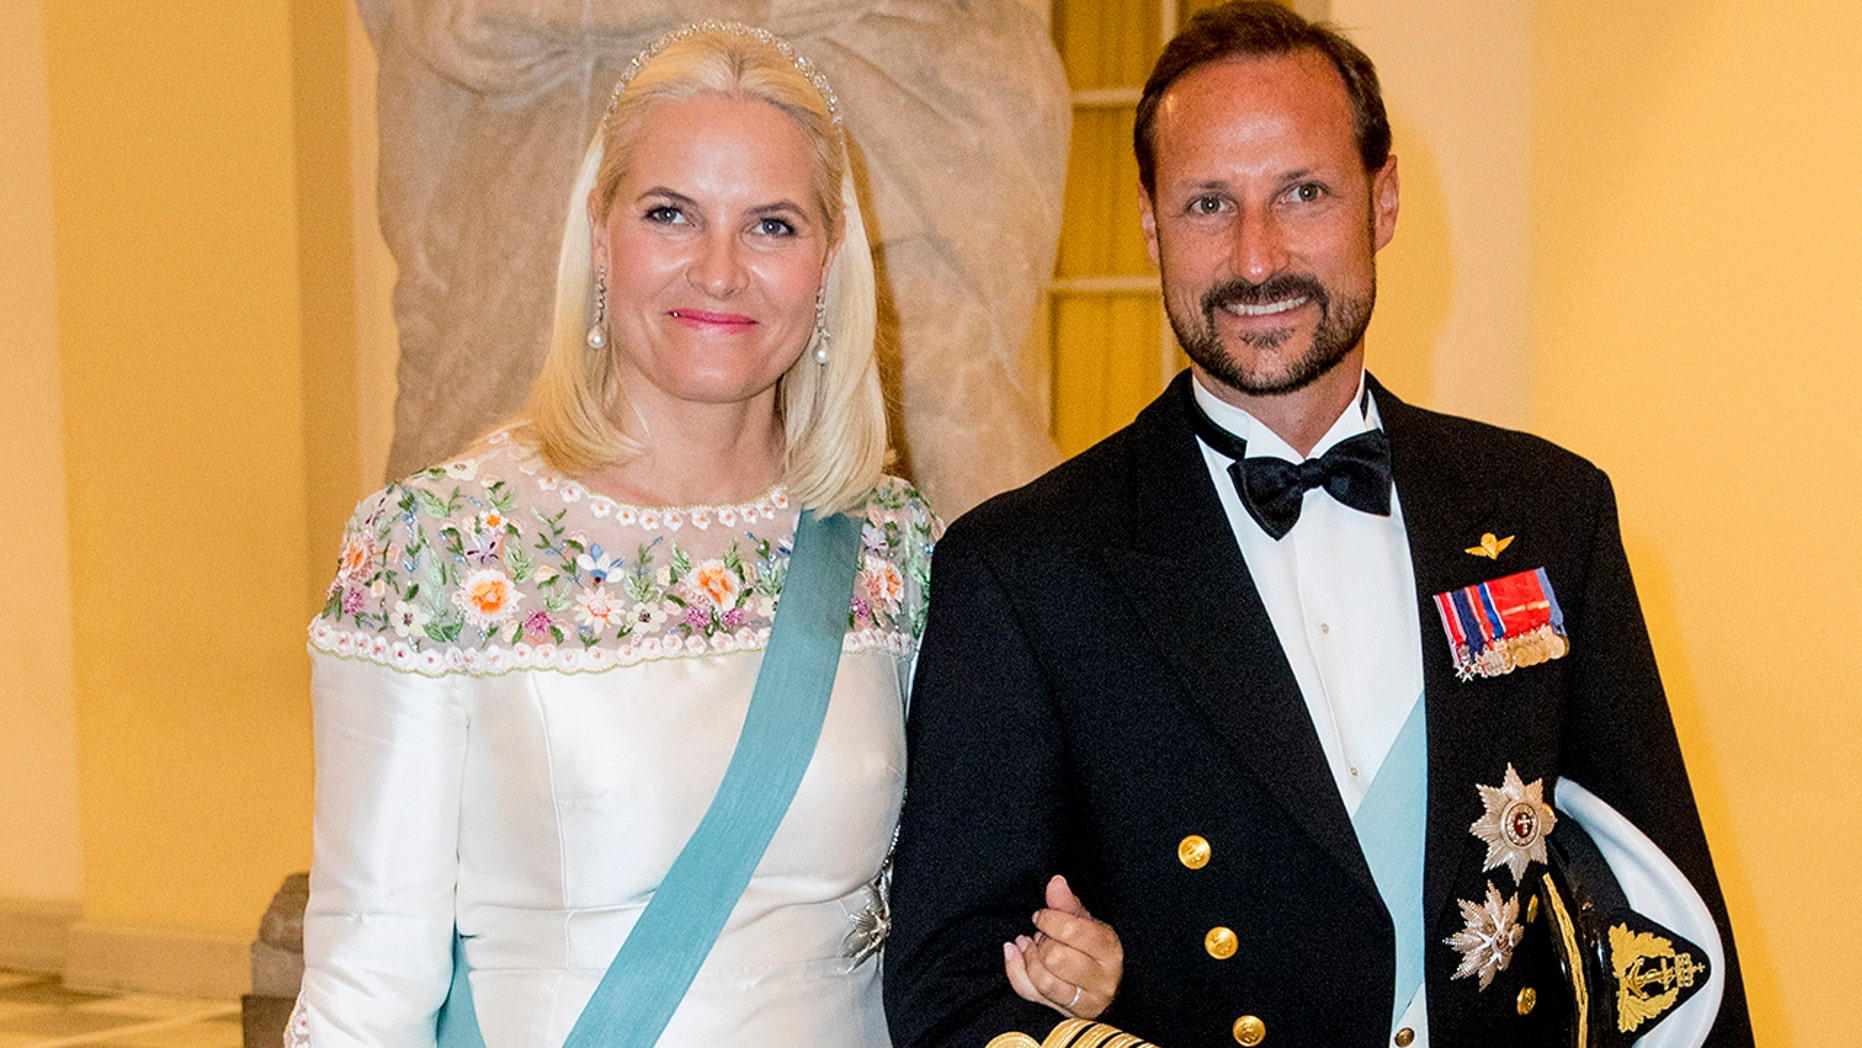 Crown Princess Mette-Marit has revealedchronic lung diseasediagnosis. Here she attends the gala banquet on the occasion of The Crown Prince's 50th birthday at Christiansborg Palace Chapel on May 26, 2018 in Copenhagen, Denmark. (Photo by Patrick van Katwijk/Getty Images)